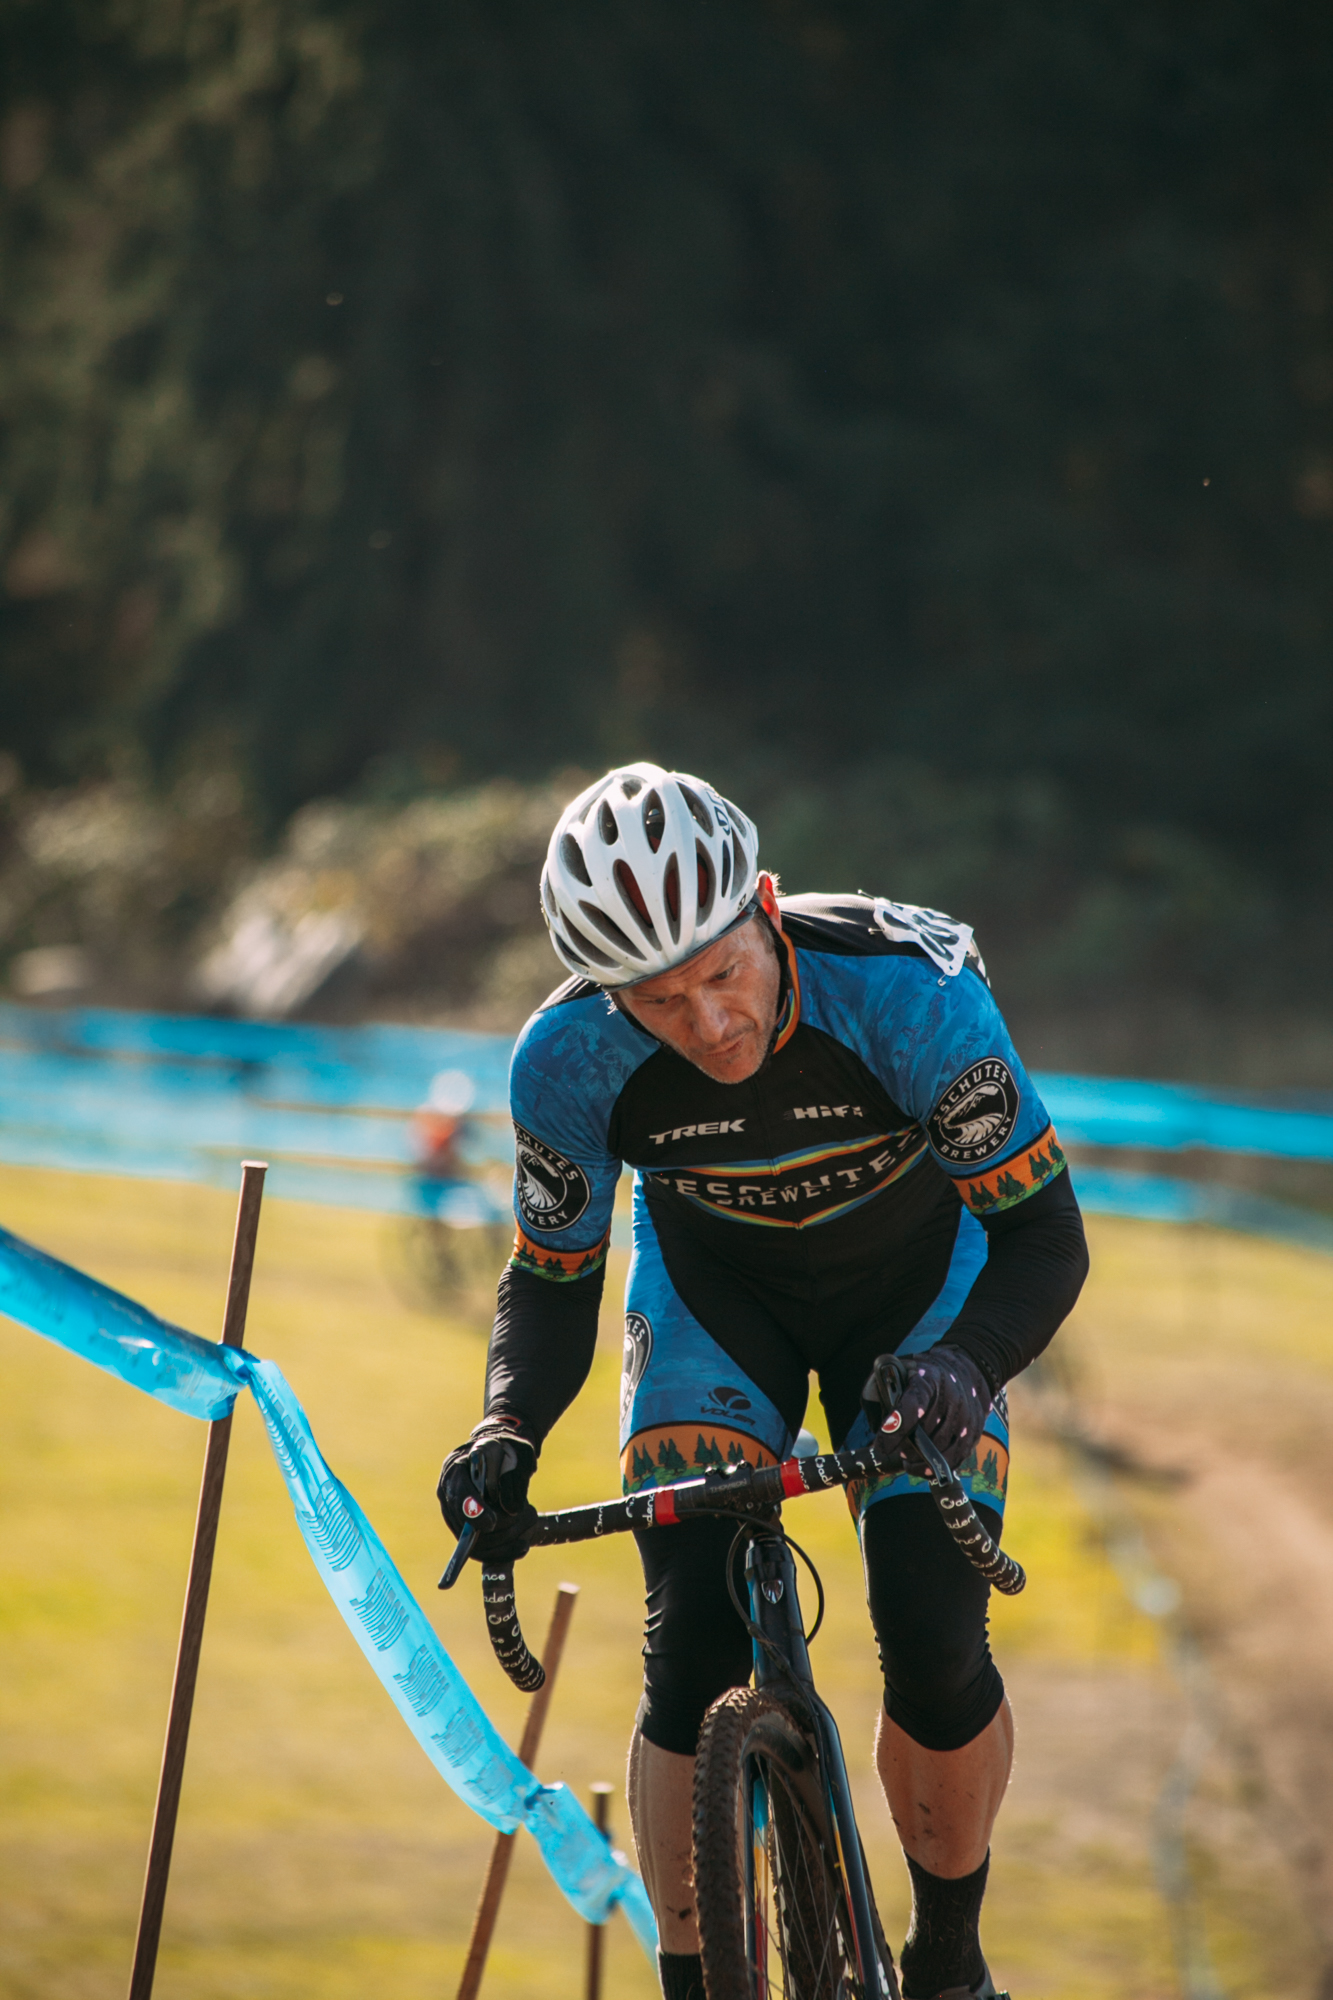 Cyclocross18_CCCX_RainierHS-232-mettlecycling.jpg